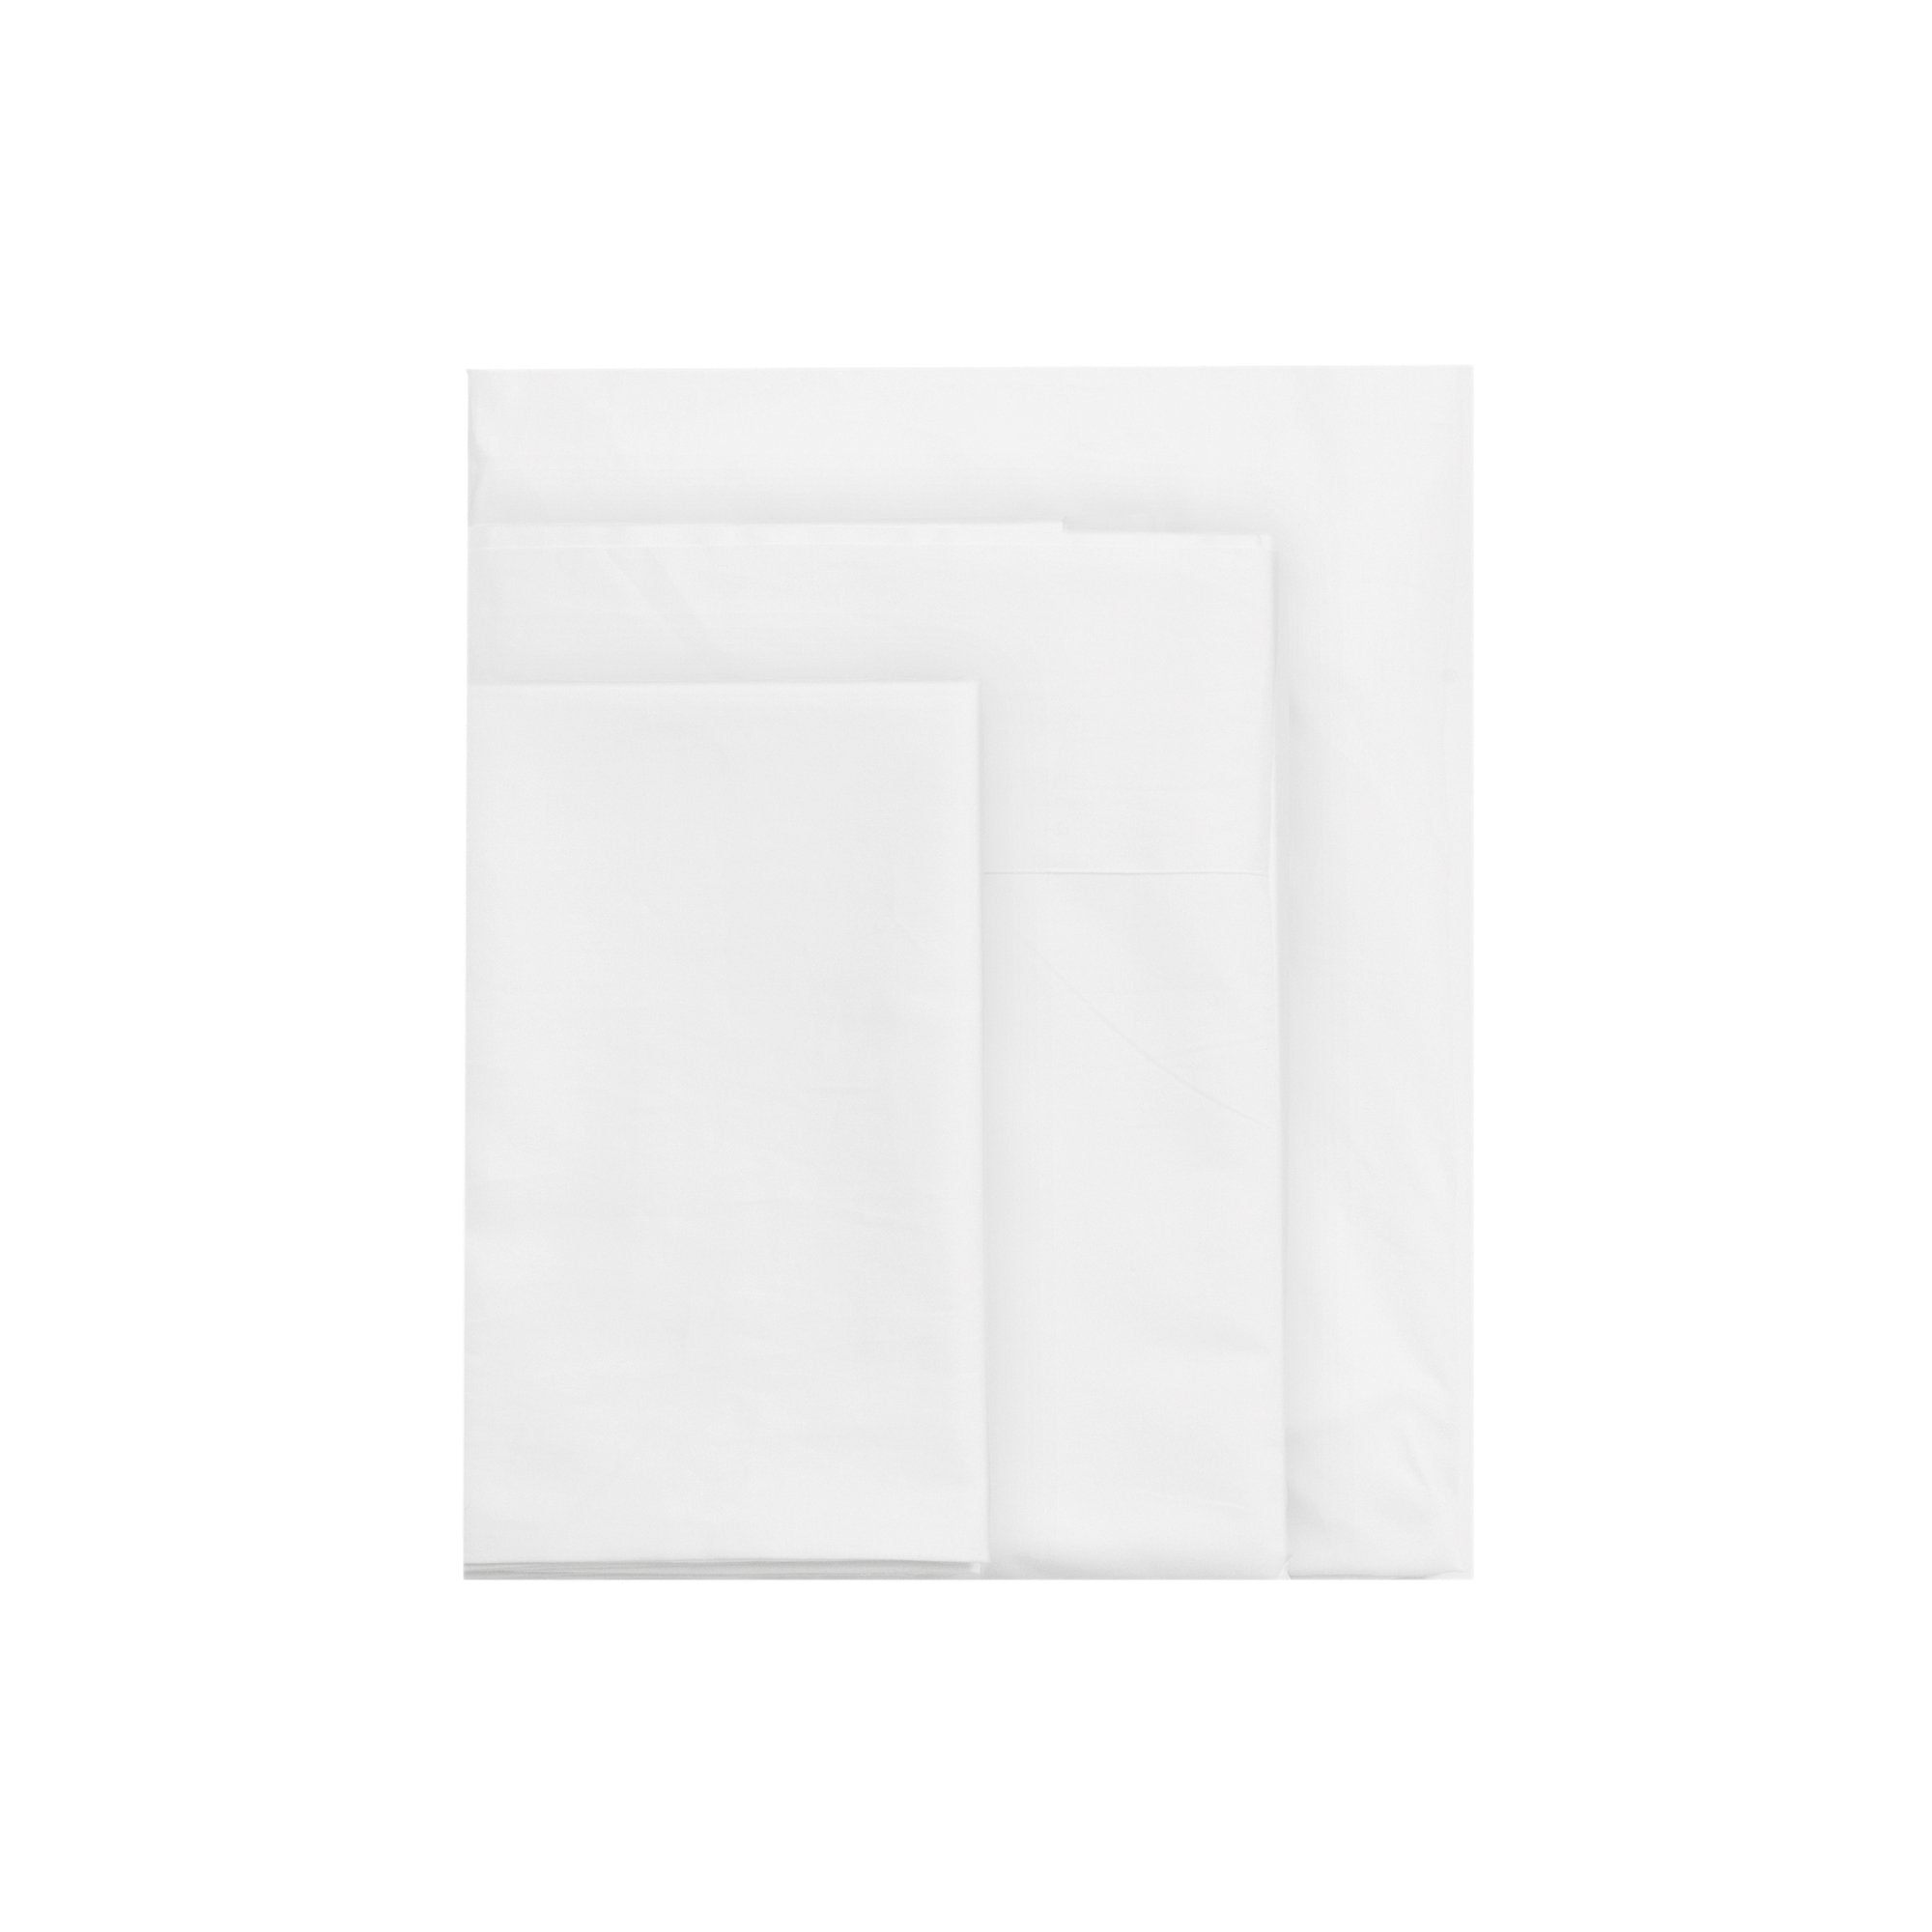 Kikau's Coconut White kids sheet set on white background